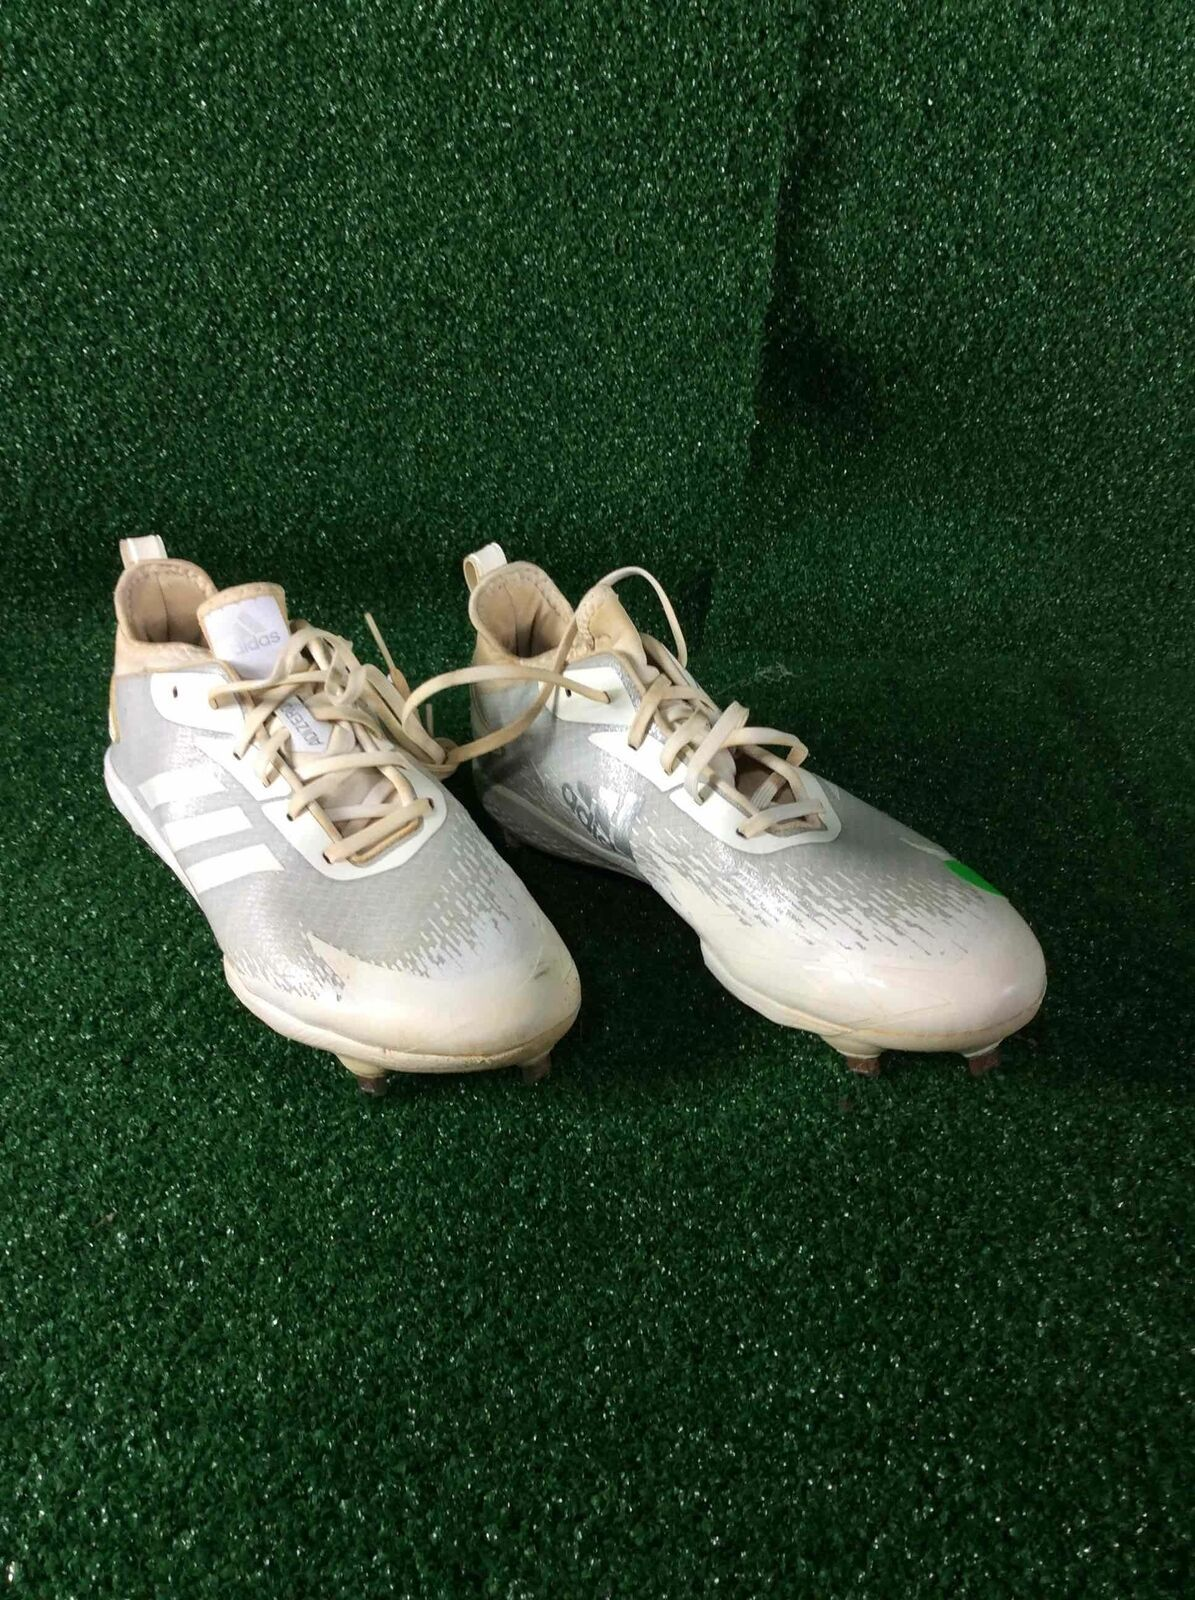 Primary image for Adidas Adizero 10.0 Size Baseball Cleats